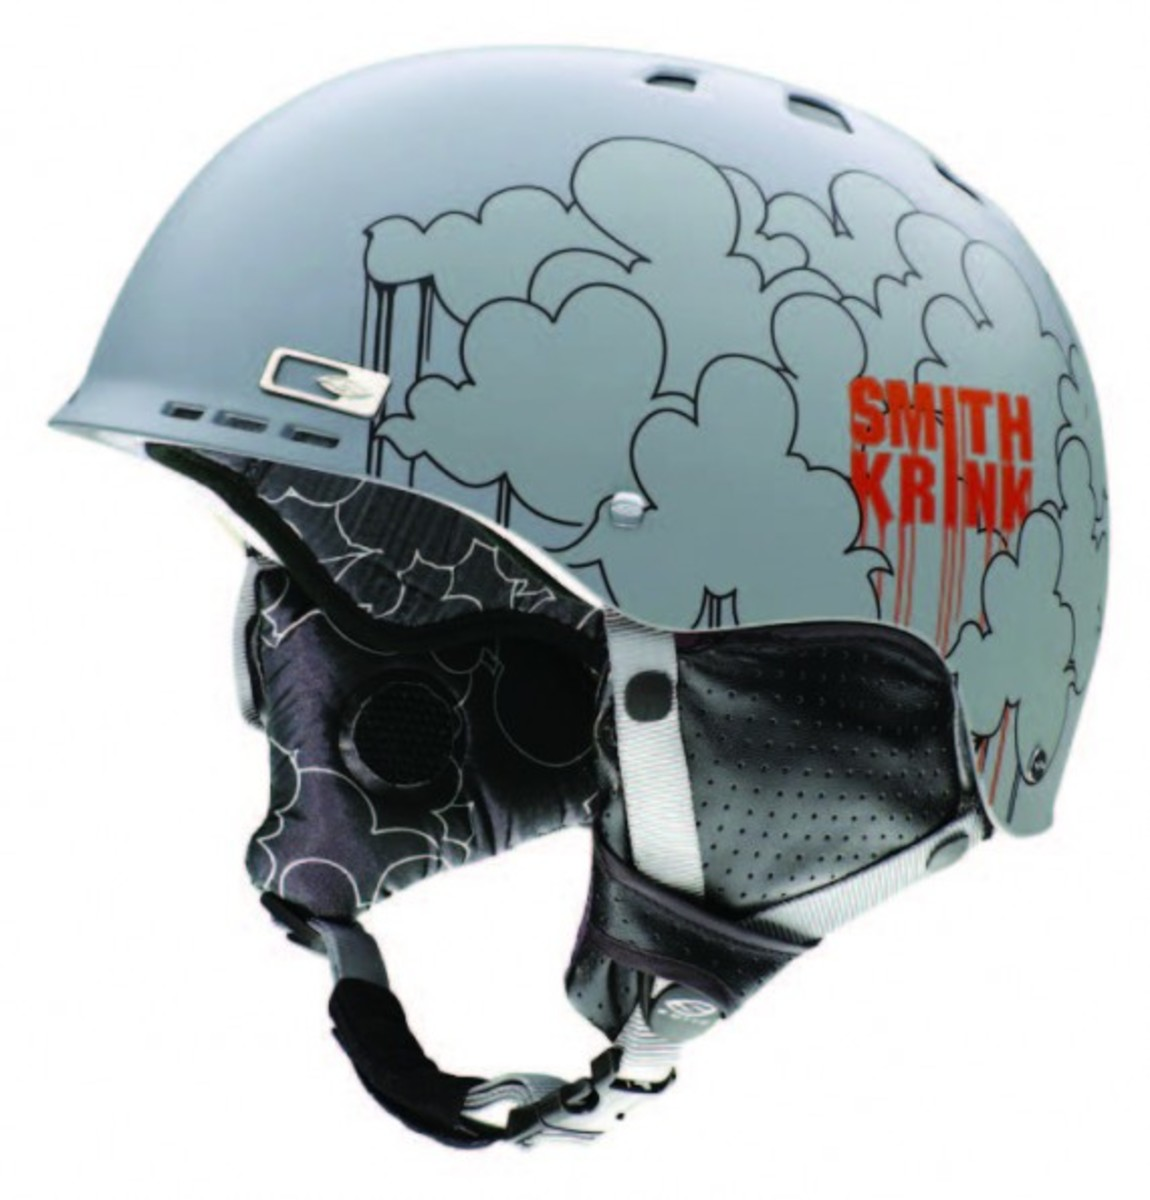 Smith x KRINK - Smith EXCLUSIVO Collection - Holt Helmet with Clouds